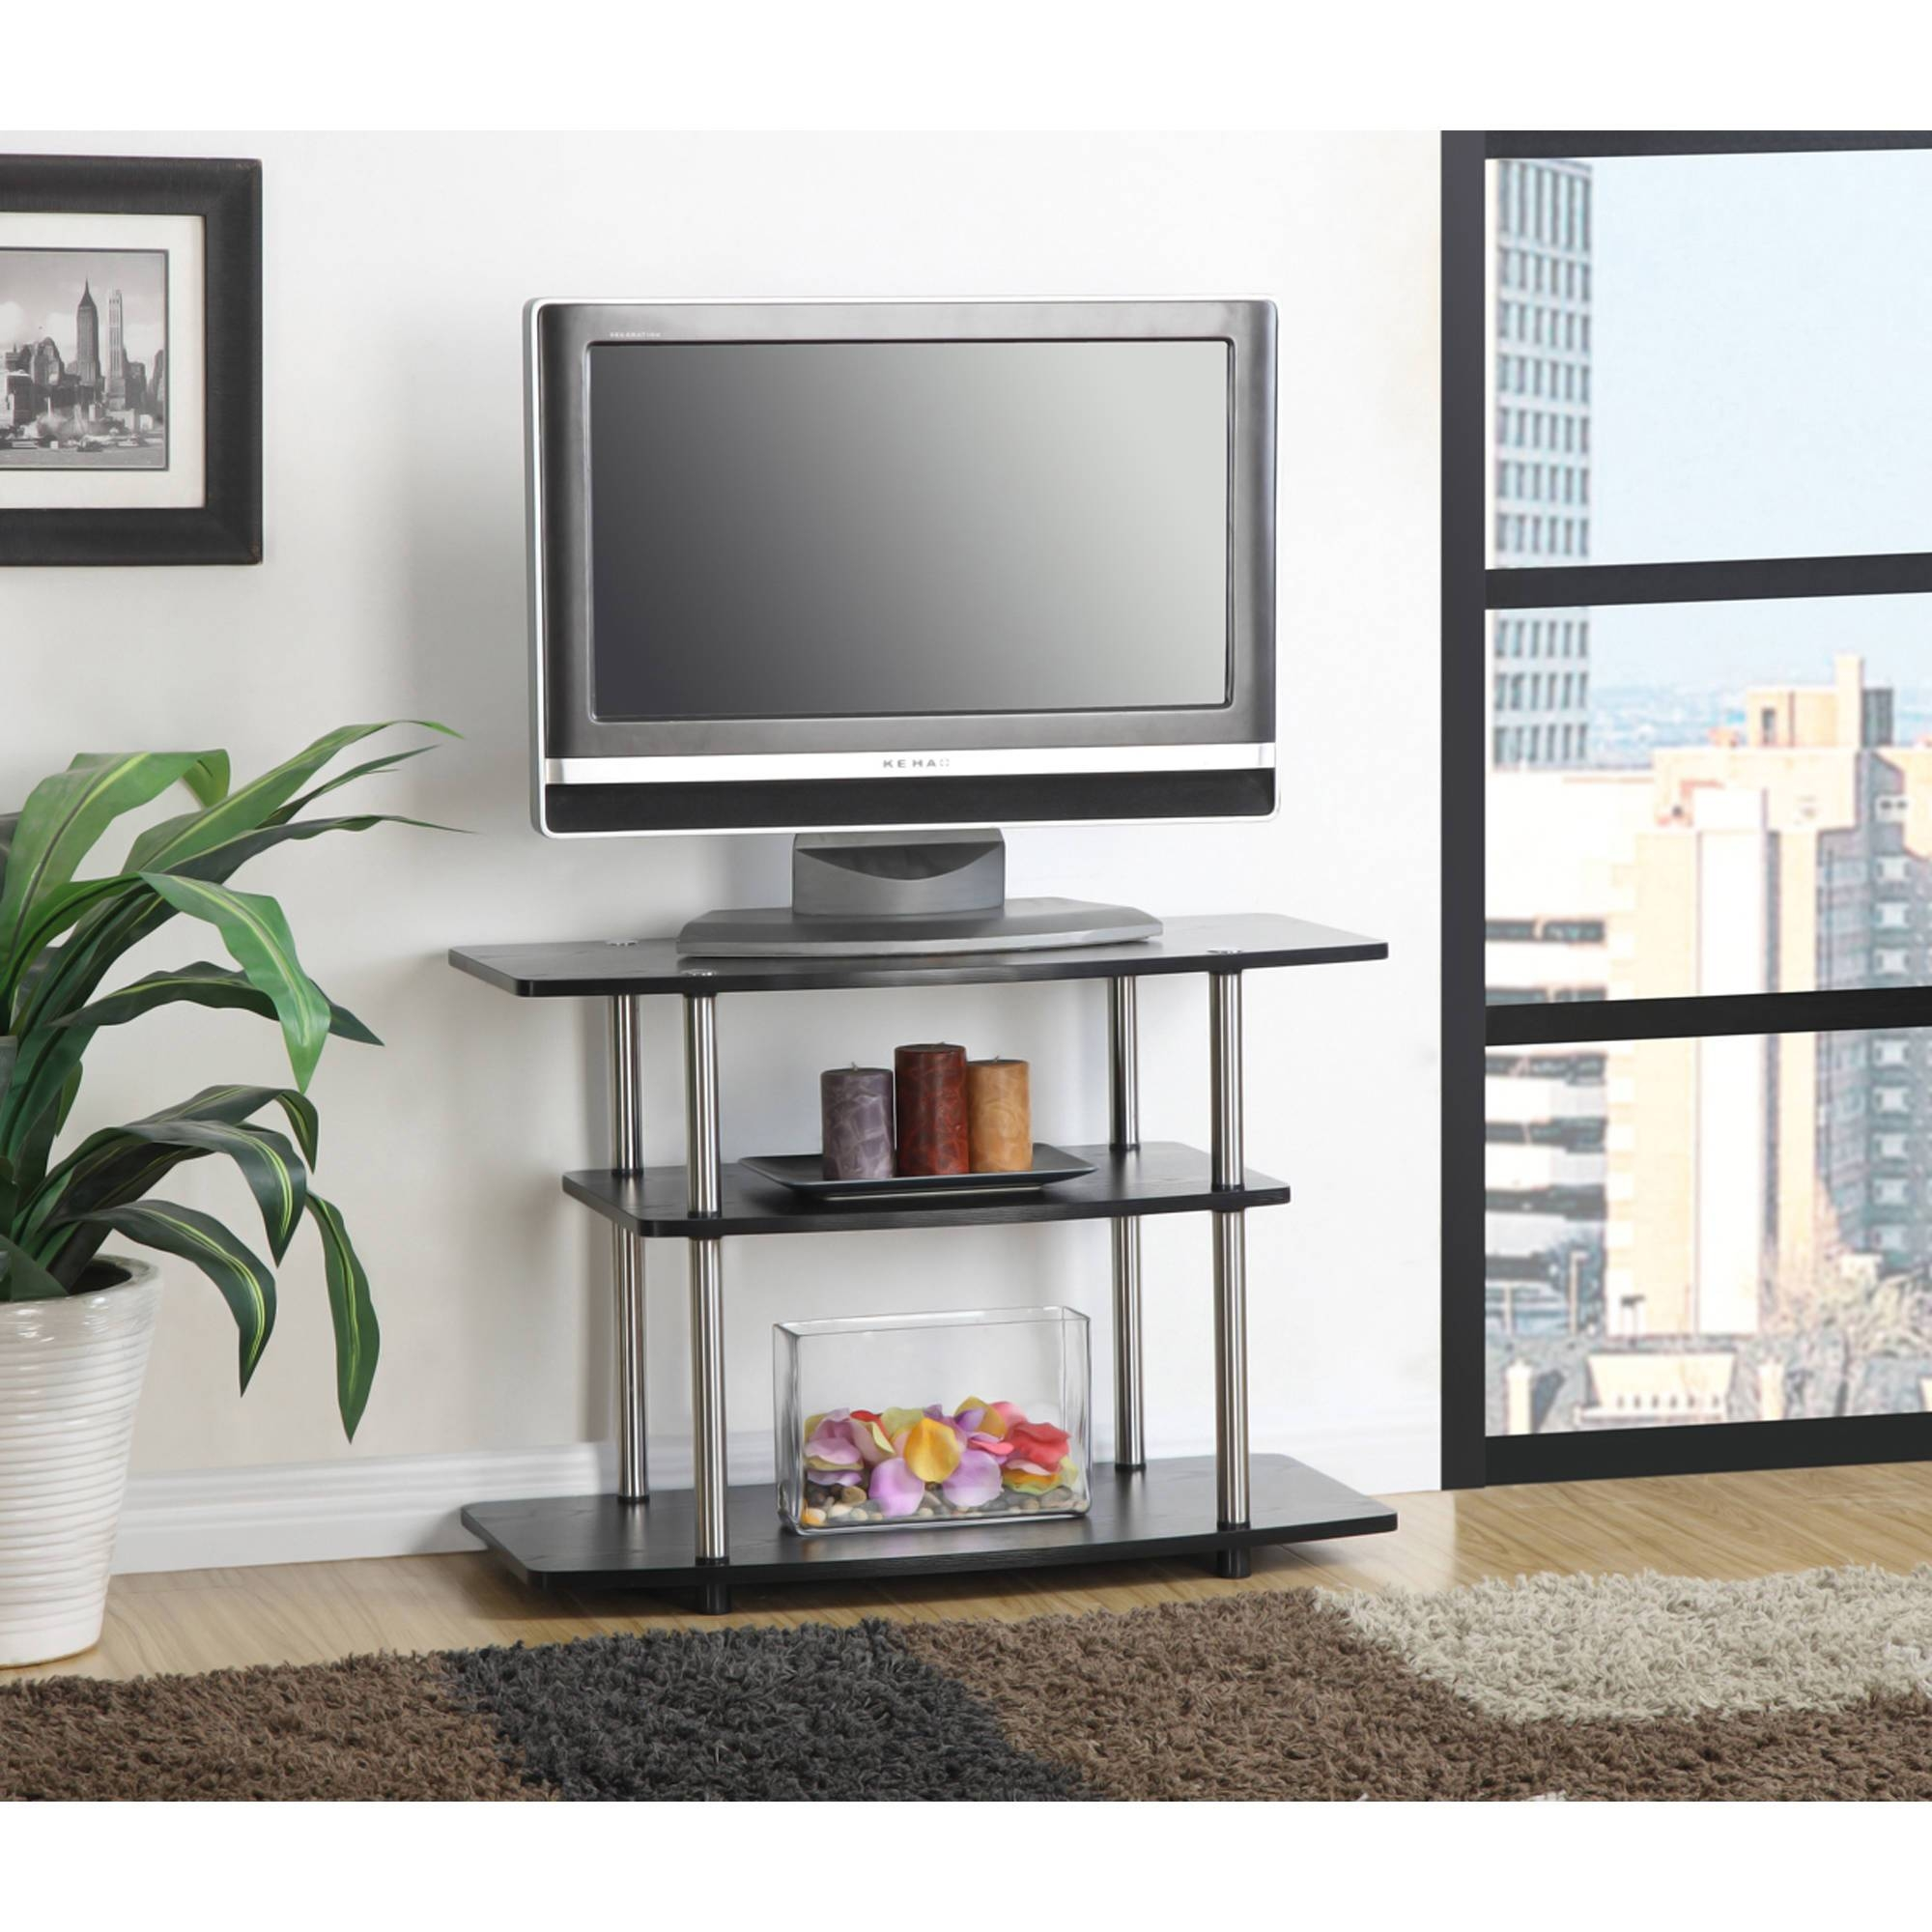 Bedrooms : Best 24 Inch Tv 32 Inch Flat Screen Tv Buy Flat Screen for 24 Inch Tall Tv Stands (Image 6 of 15)